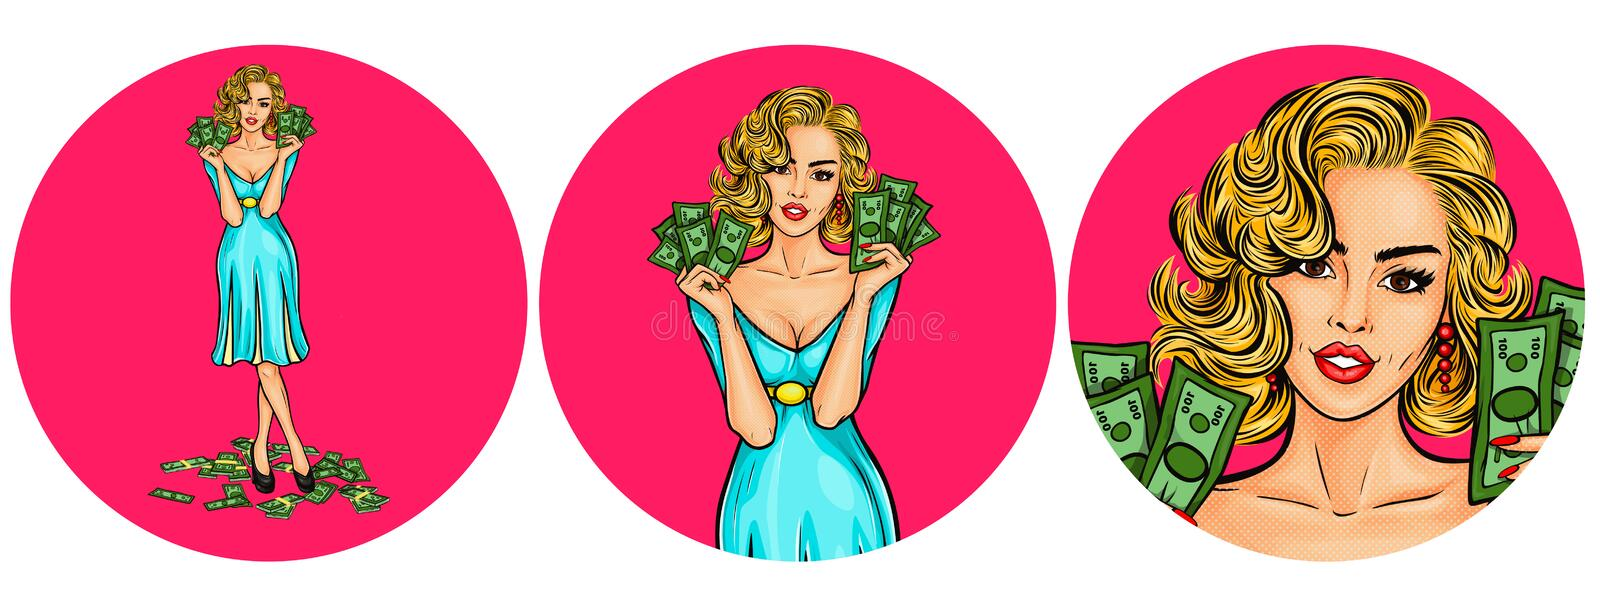 Set of vector illustration, womens pop art round avatars icons. For users of social networking, blog, on white stock illustration